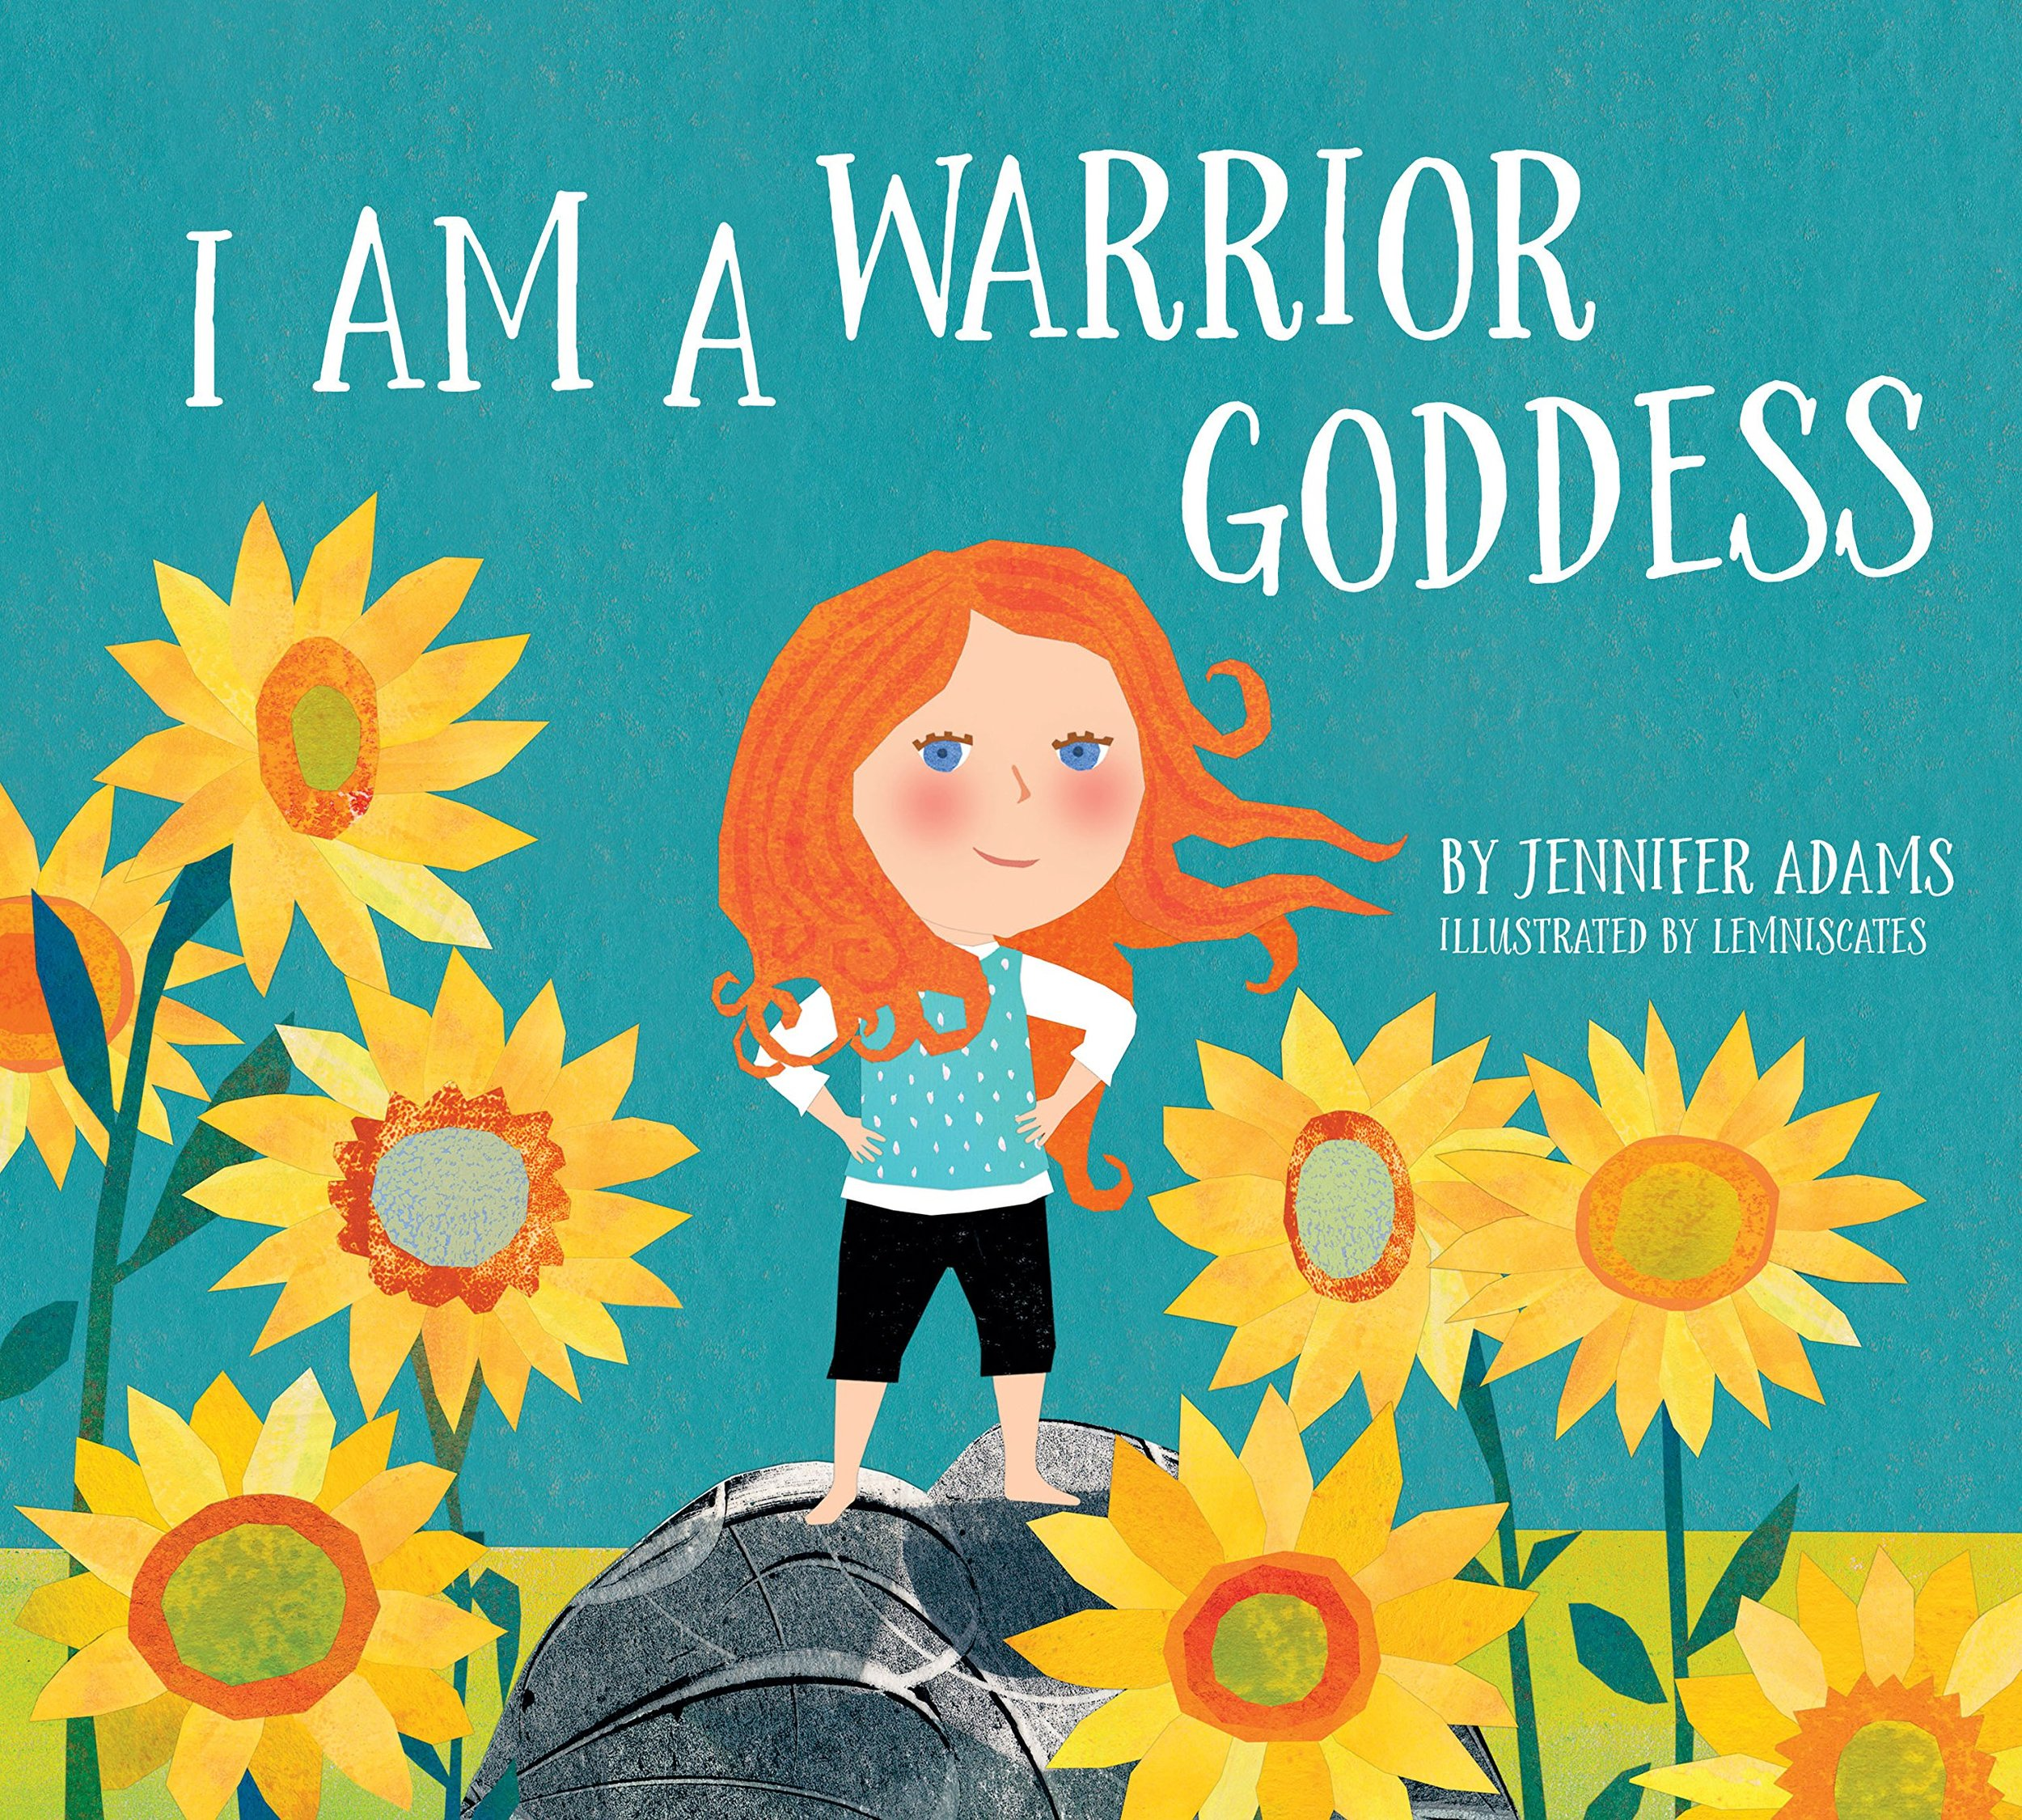 10. I Am A Warrior Goddess - Since my family is full or red heads, I love that the heroine is a young girl with gorgeous red flowing hair. This book sends the message that you don't have to be a grown up to be a hero and that each day is full of opportunities to make a positive impact with ordinary actions . Our warrior goddess is connected to nature and keeps her body and mind strong. She's loving and fierce. She helps others and is a leader. She's self reliant and confident.